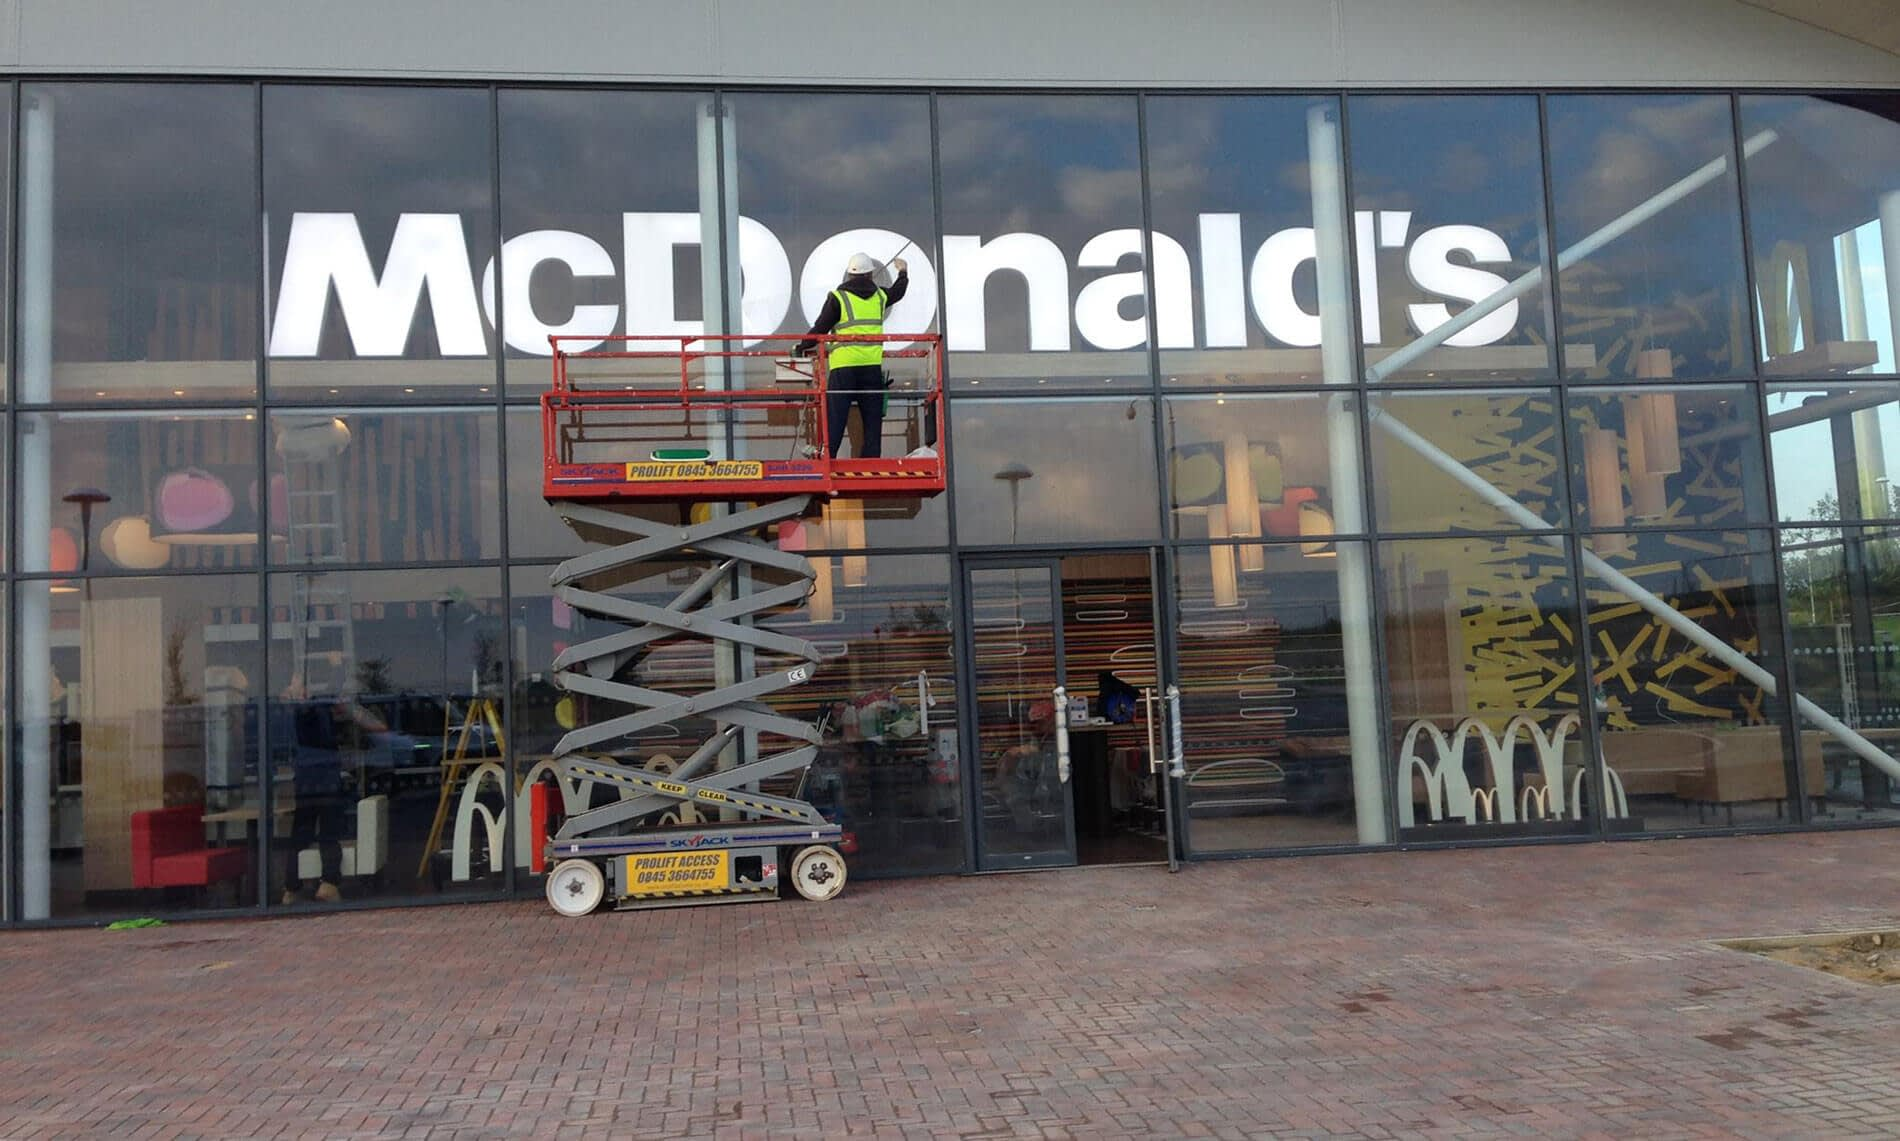 After Builders Mcdonalds